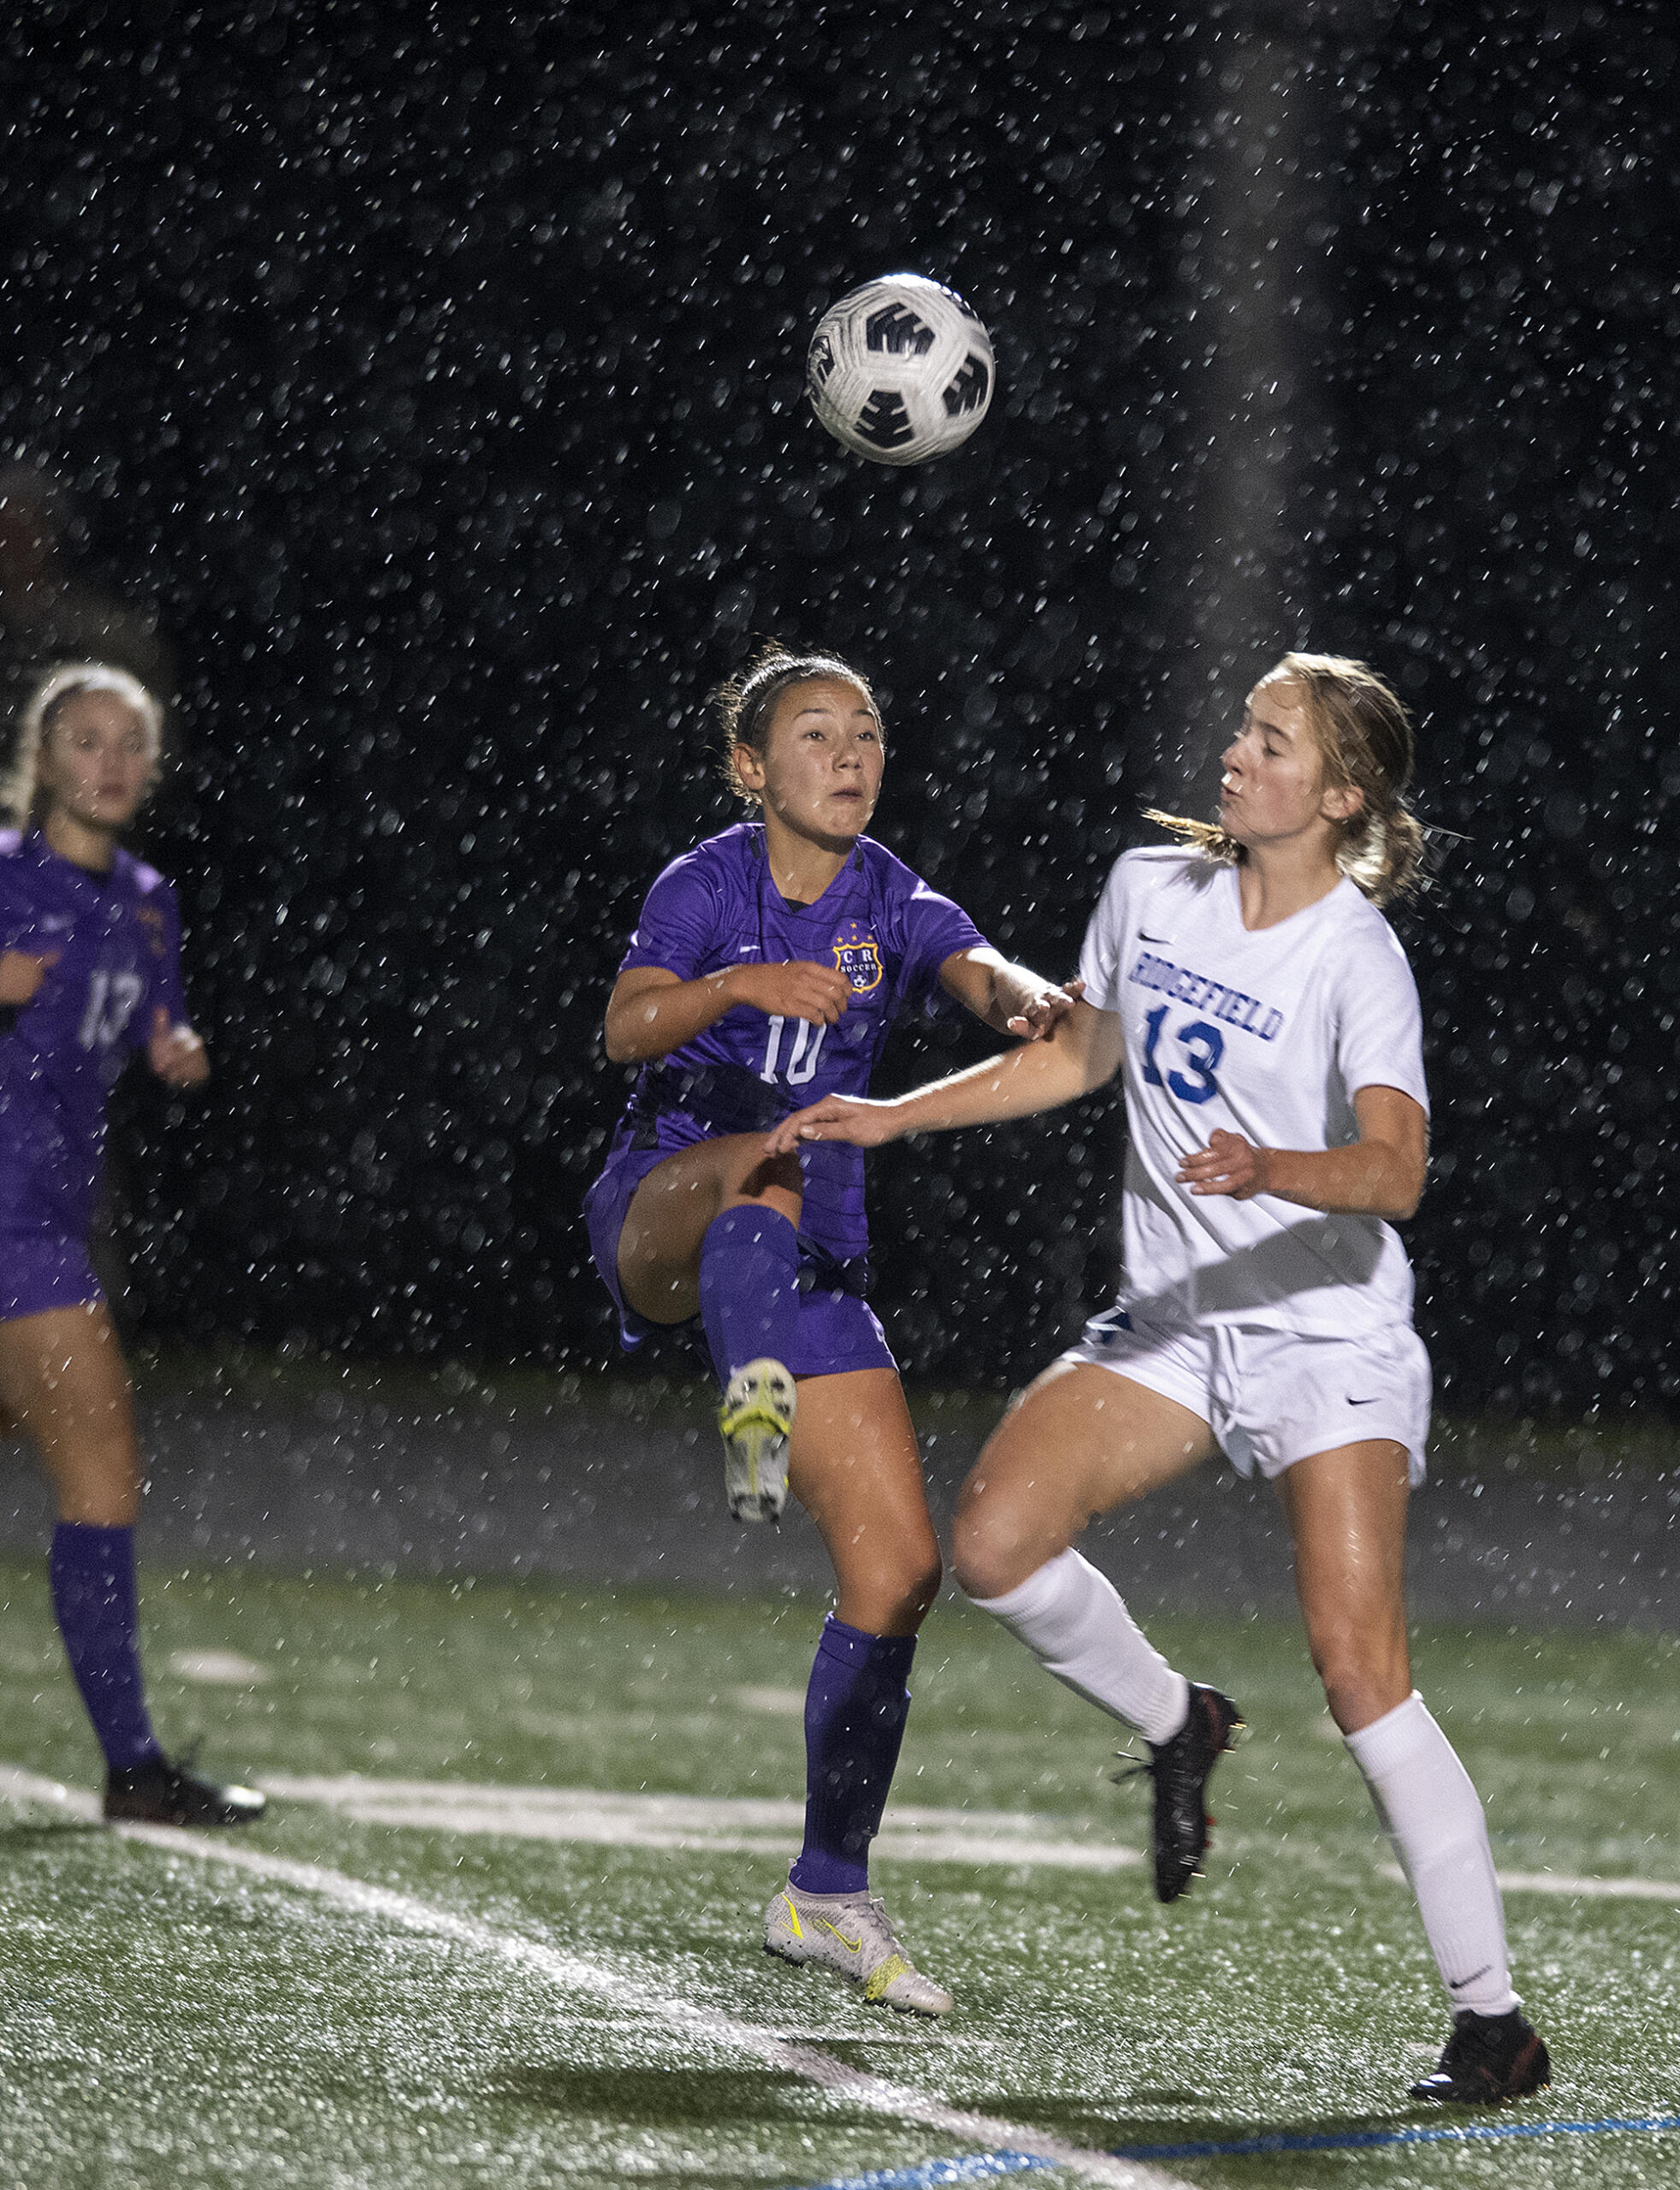 Columbia River's Andie Buckley (10) and Ridgefield's Cameron Jones (13) handle a header in the first half at Columbia River High School on Tuesday night, Oct. 12, 2021.